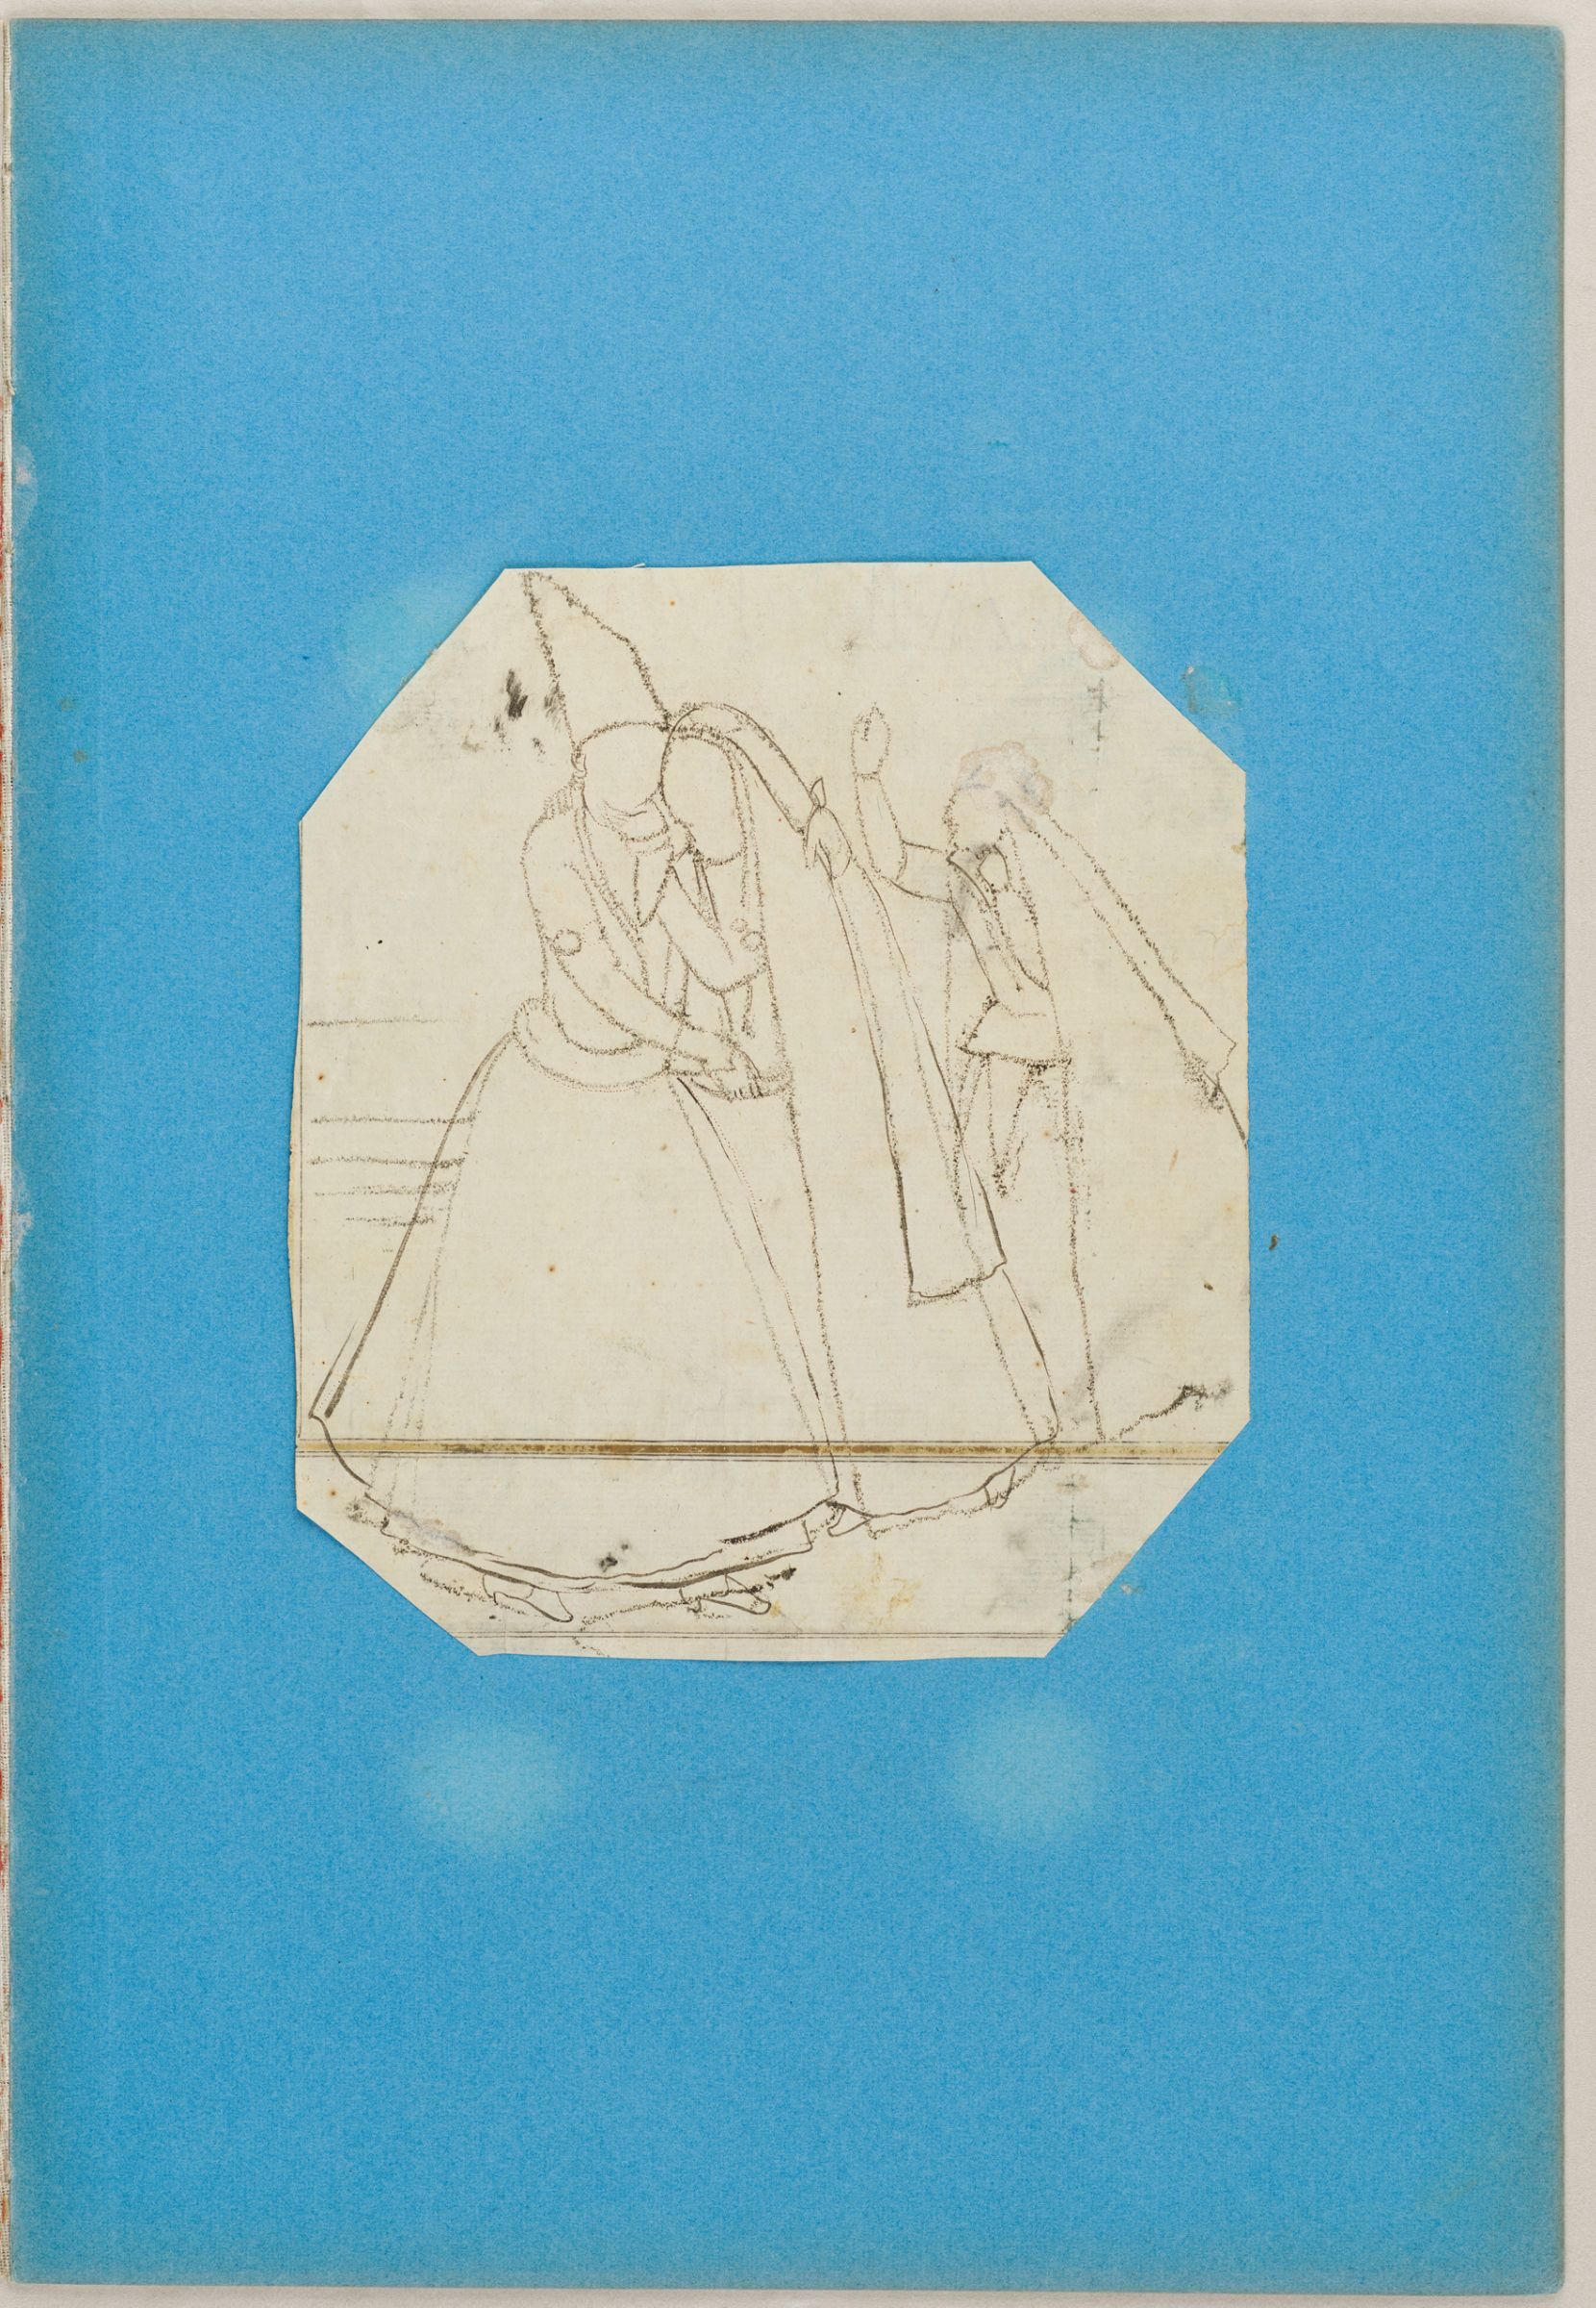 Embracing Couple Attended by a Woman, c. 1850s.